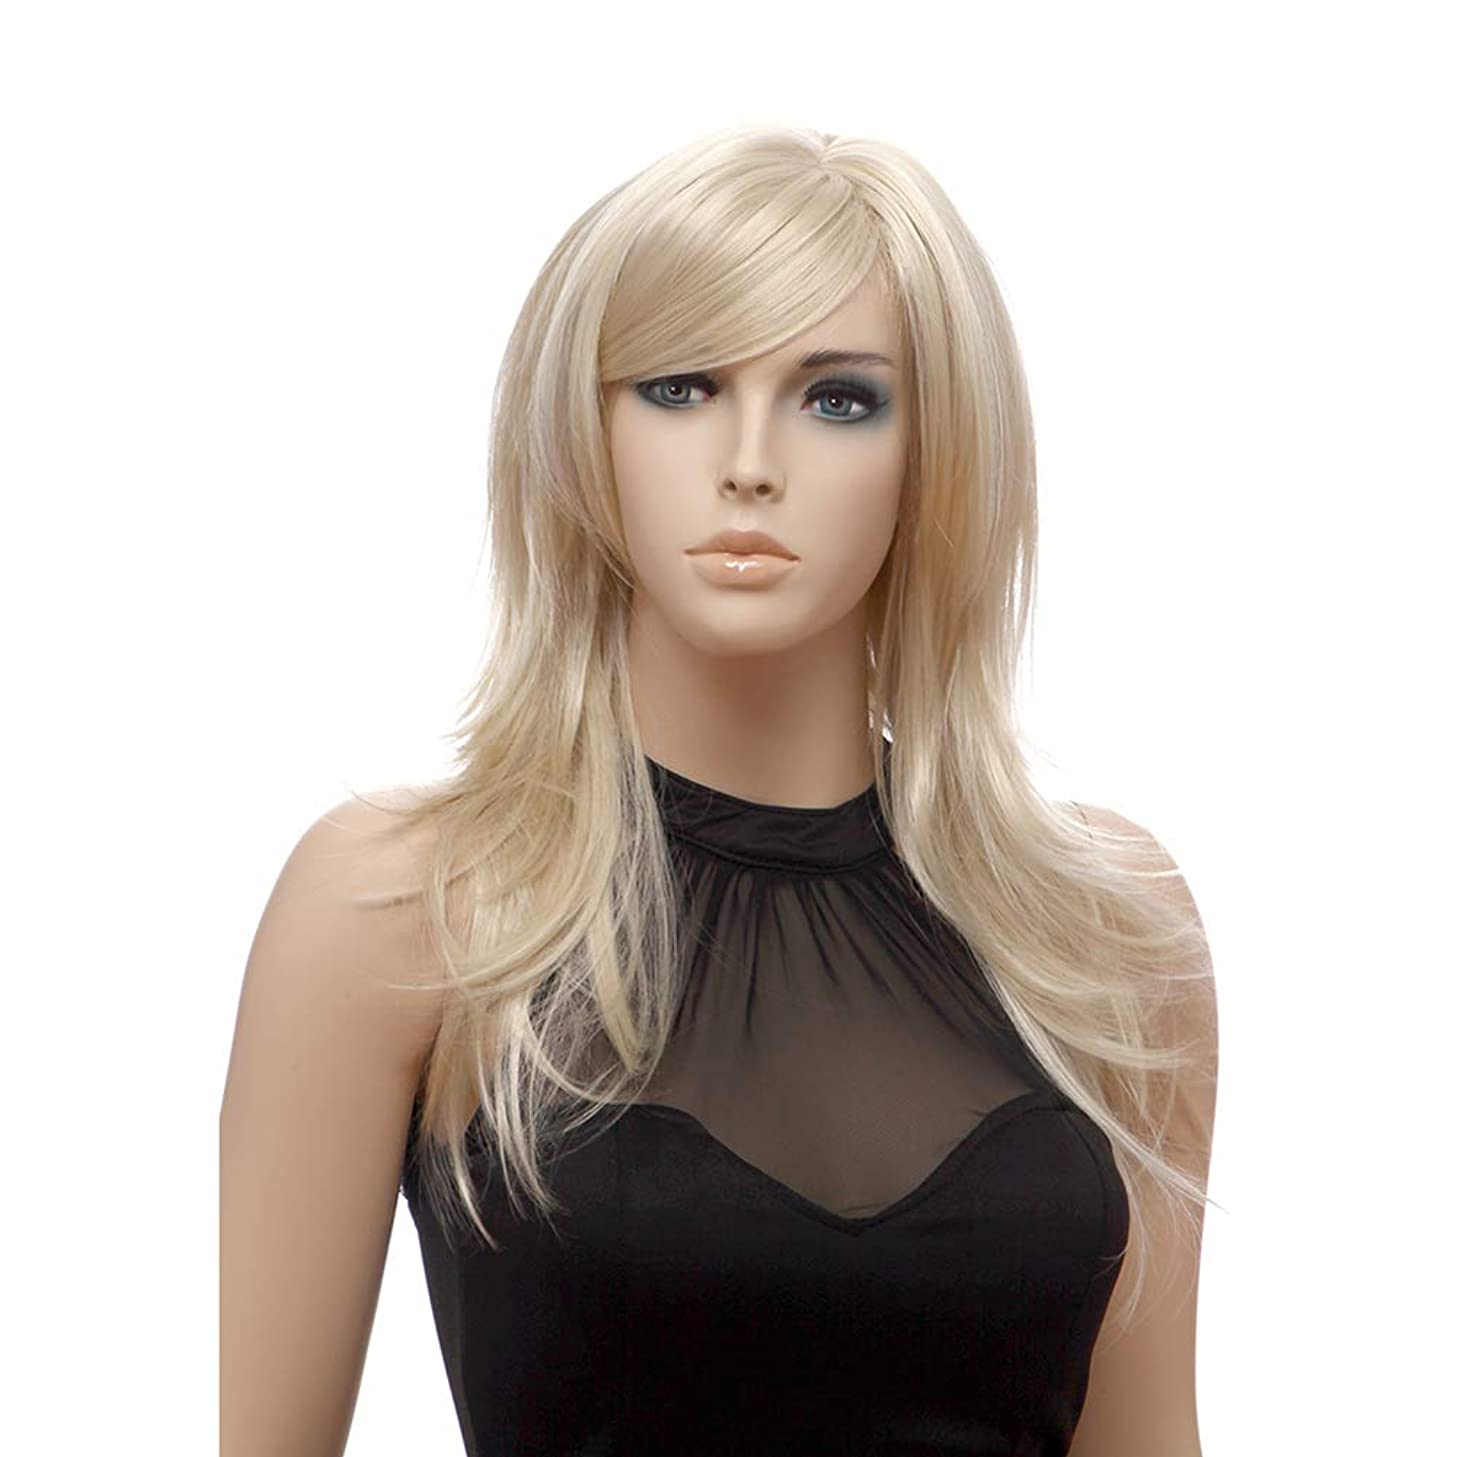 XZEN Natural Straight Hair Wig Medium Length Blonde Synthetic Wig with Side Bangs Cosplay Costume Party Wigs for Women Girls